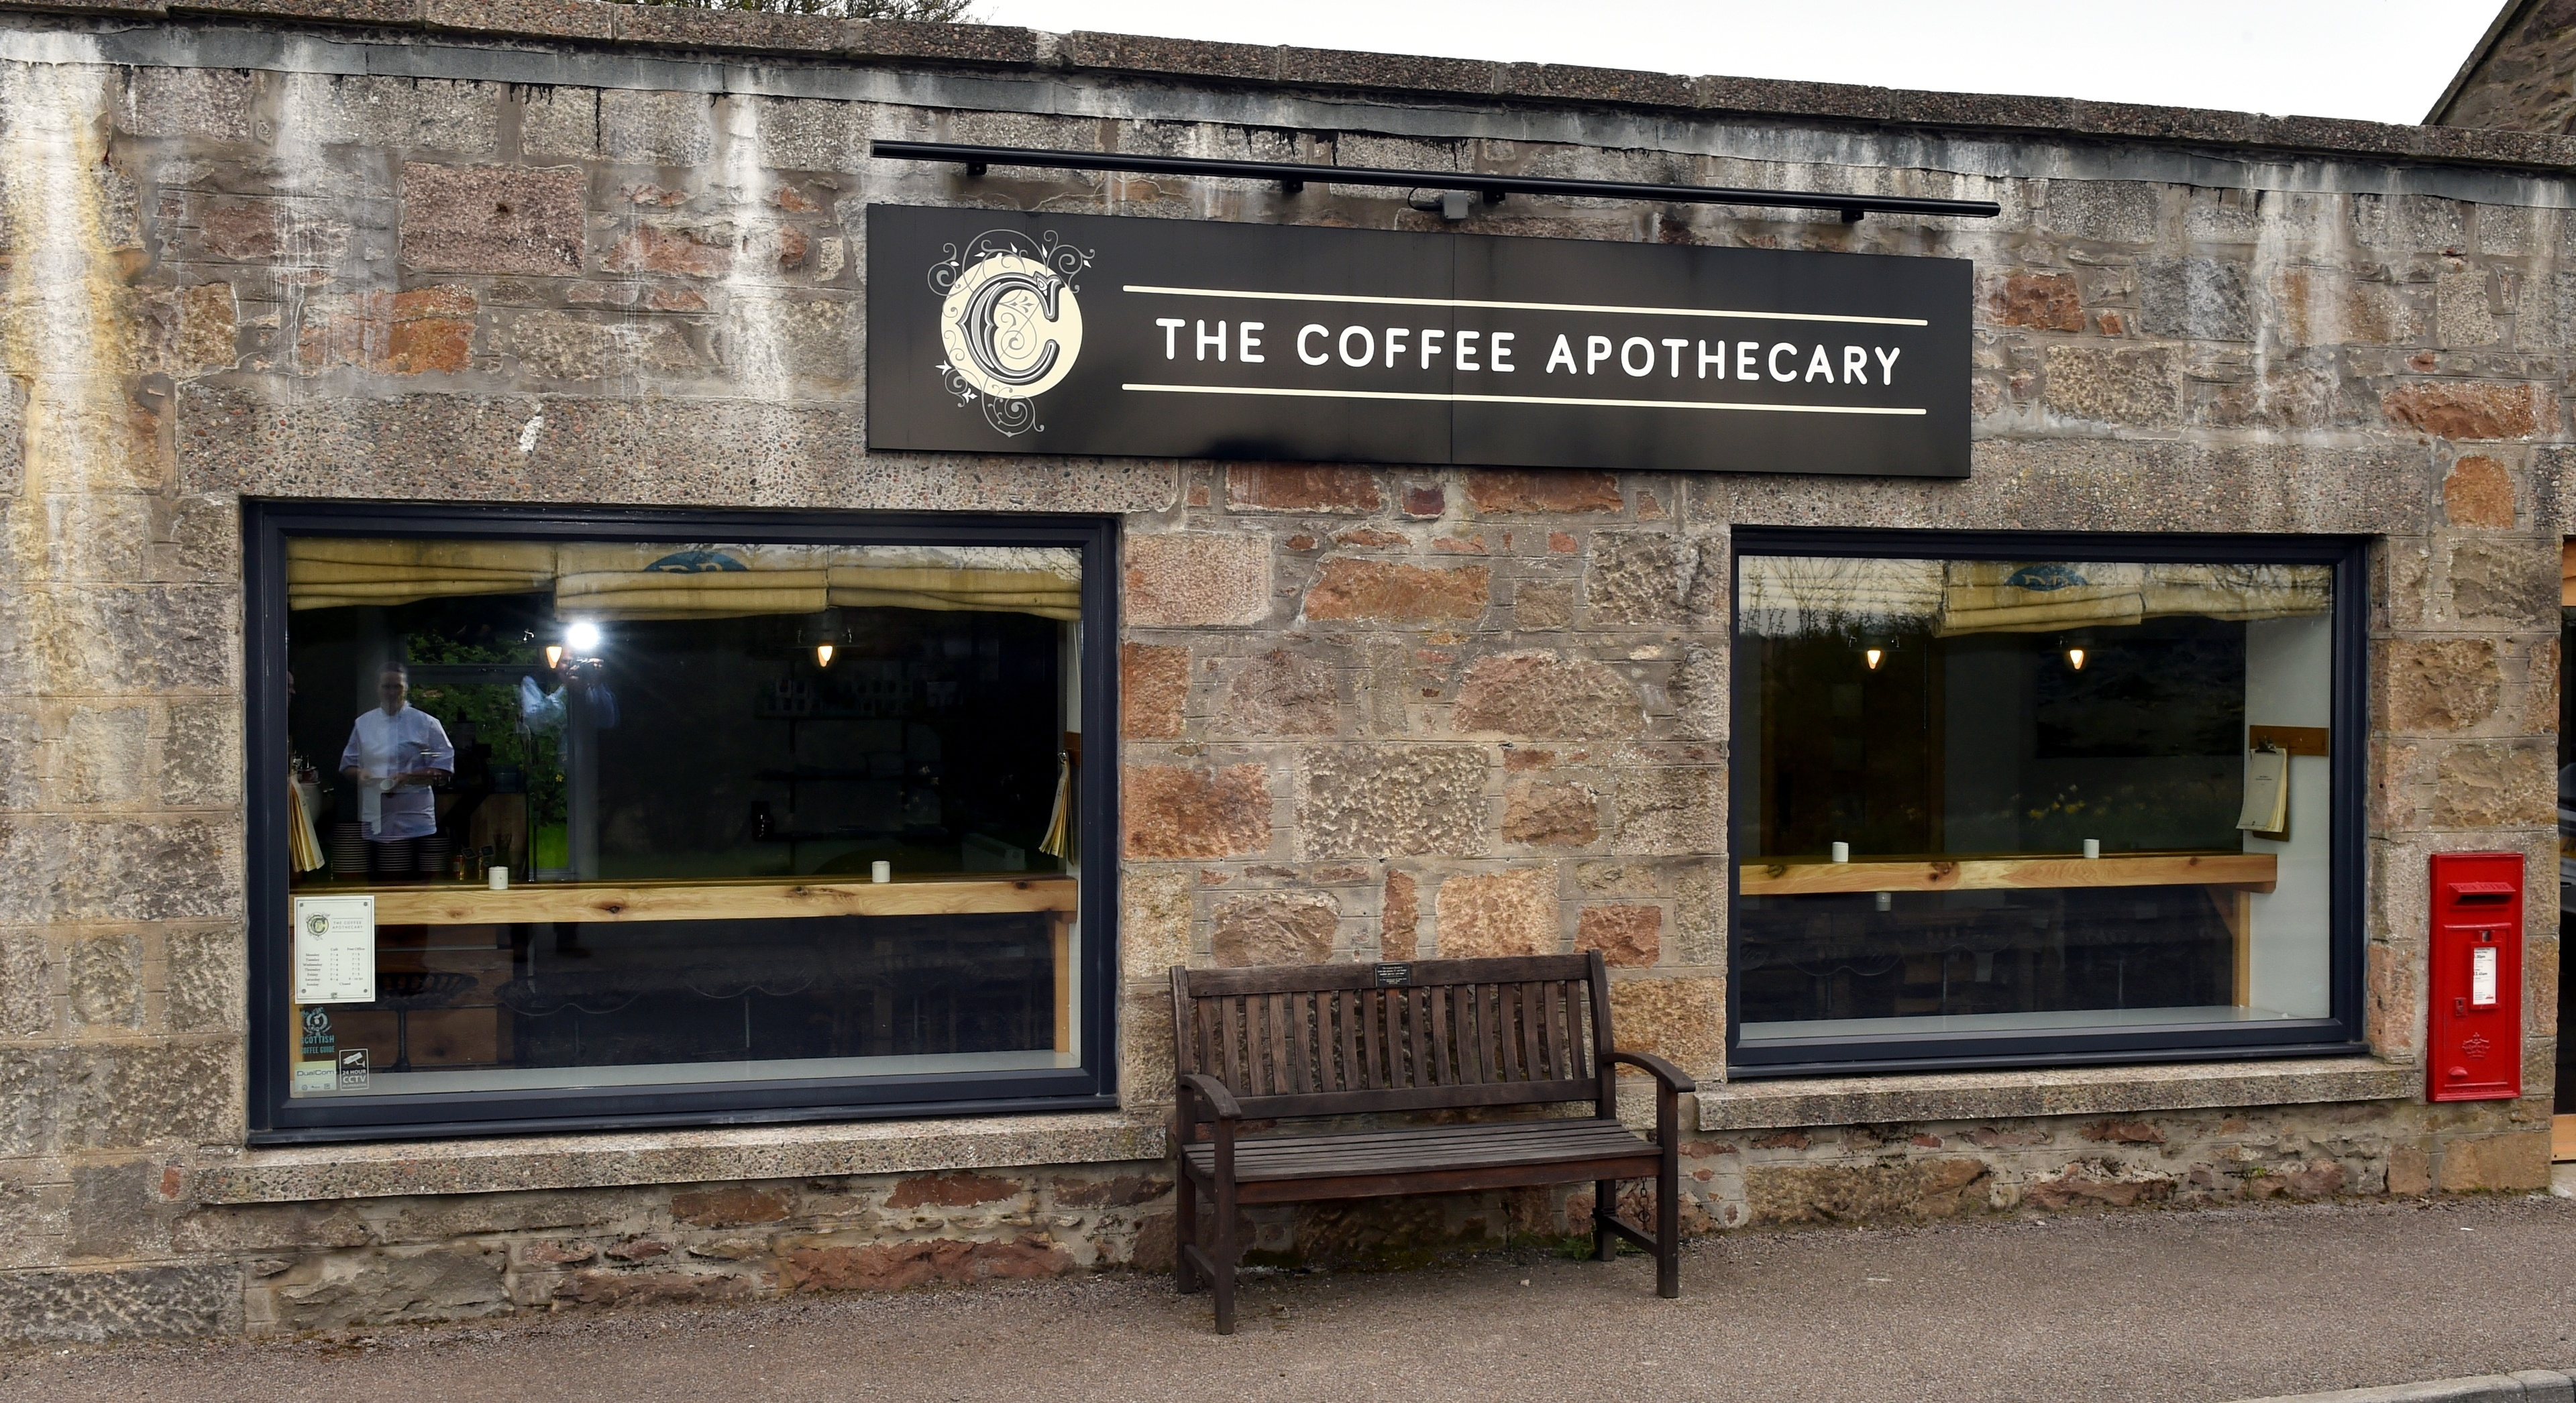 BrewDog submitted the plans to Aberdeenshire Council to open a branch of the Coffee Apothecary at The Square in Ellon